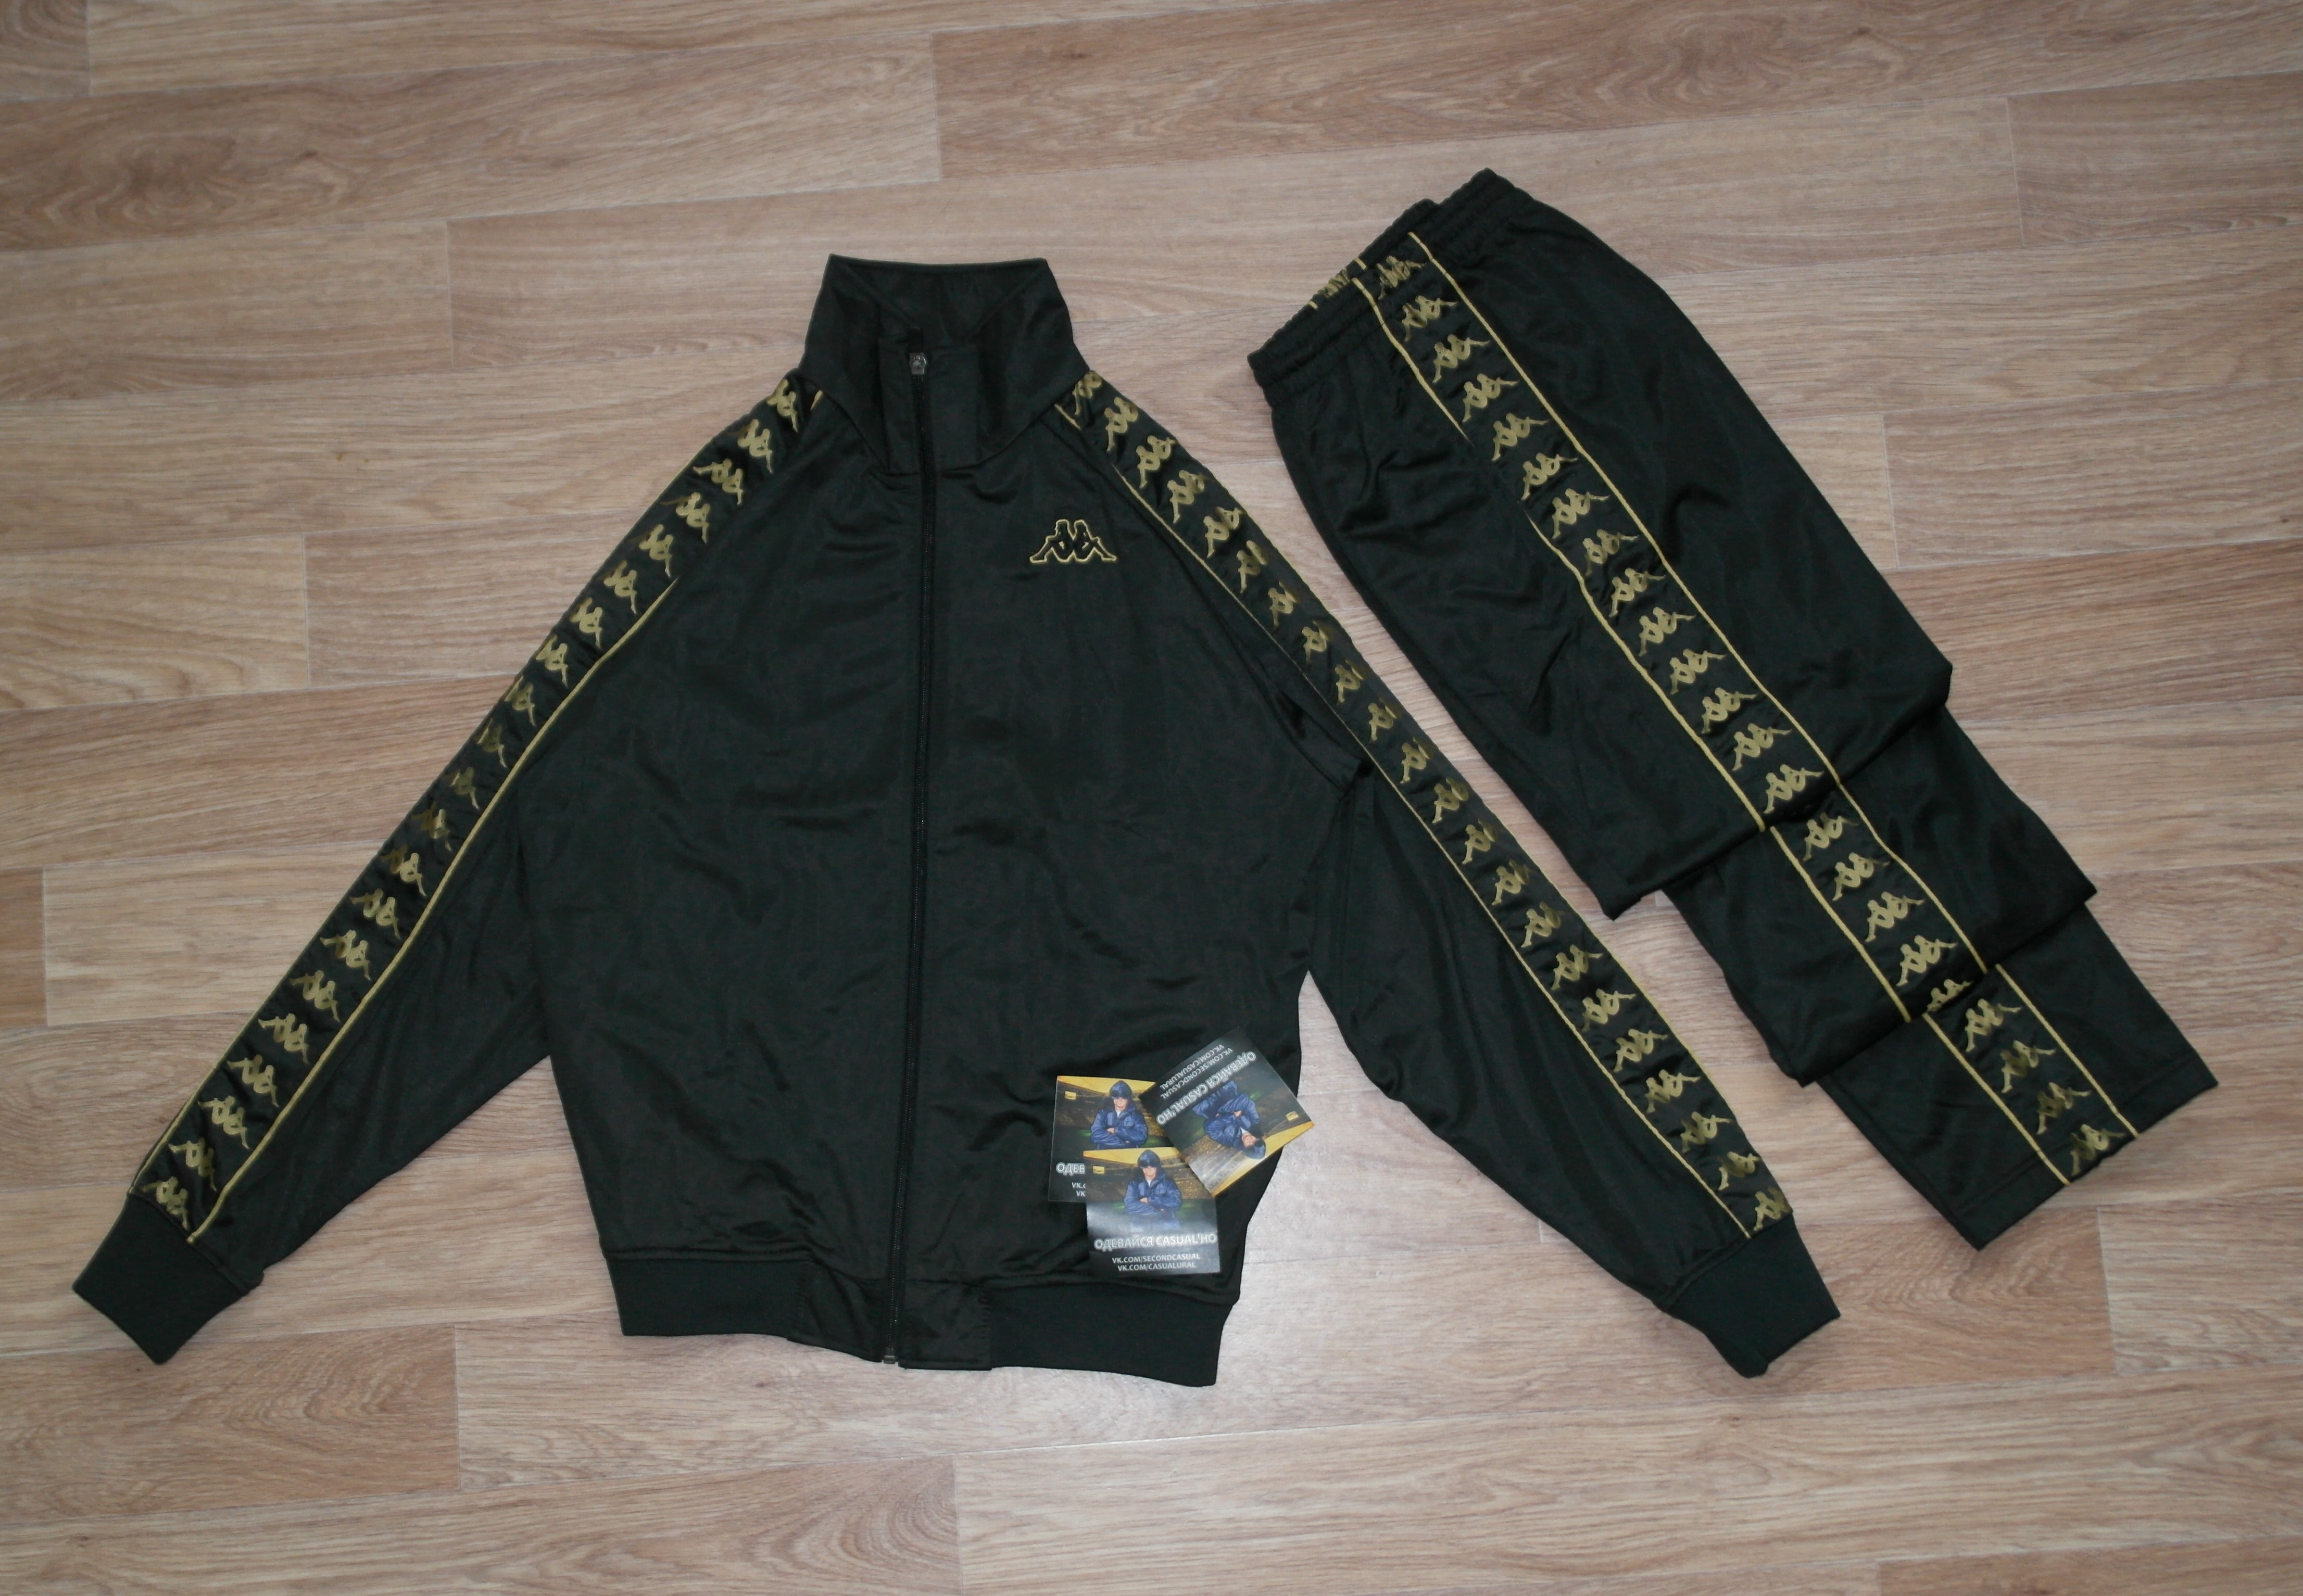 673d9c0ef1375 kappa vintage sports suit